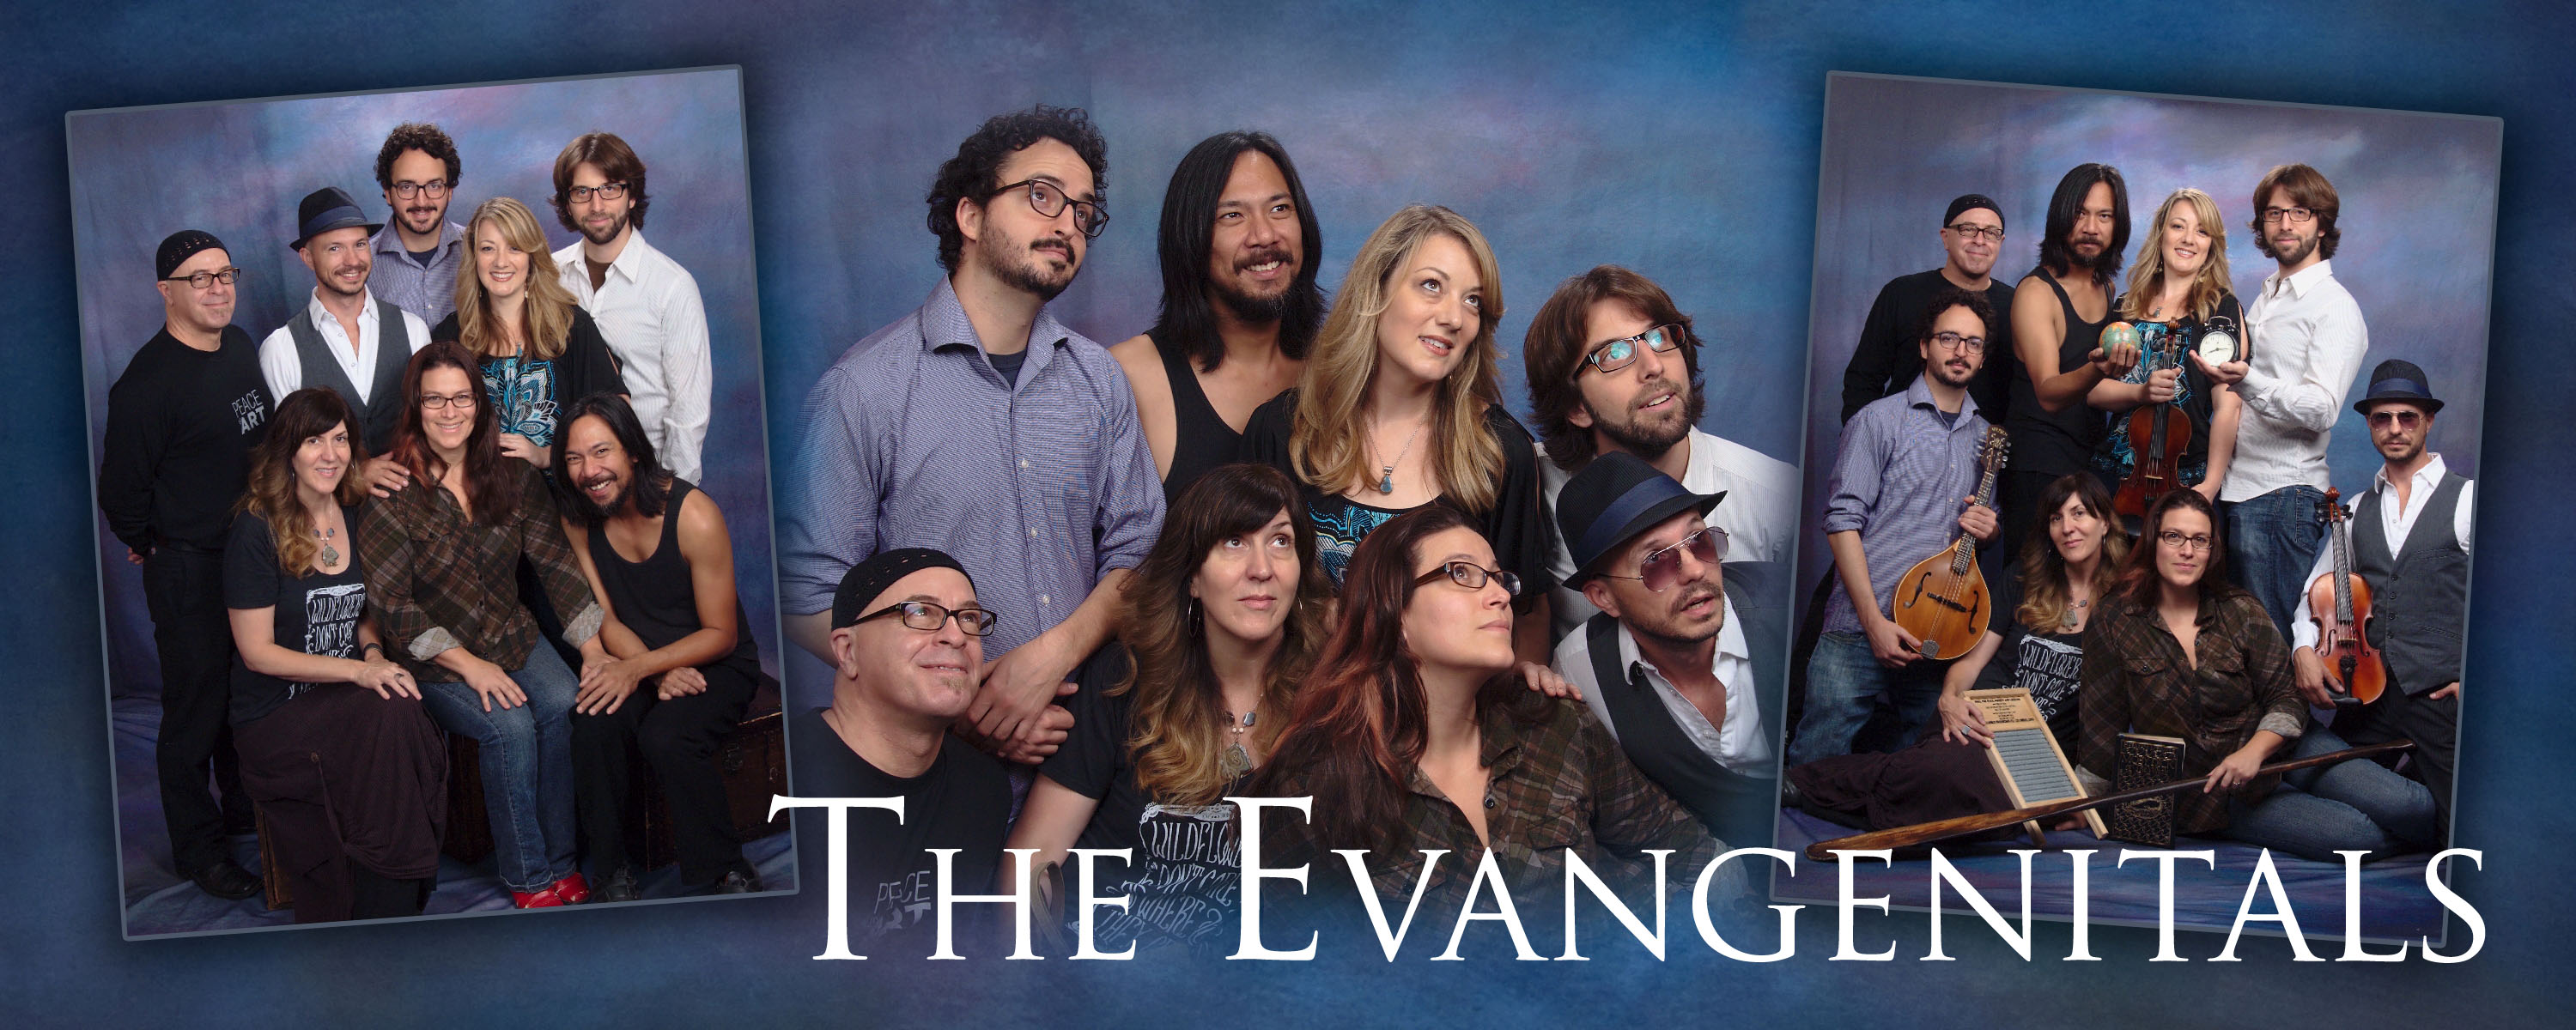 The Evangenitals Photo